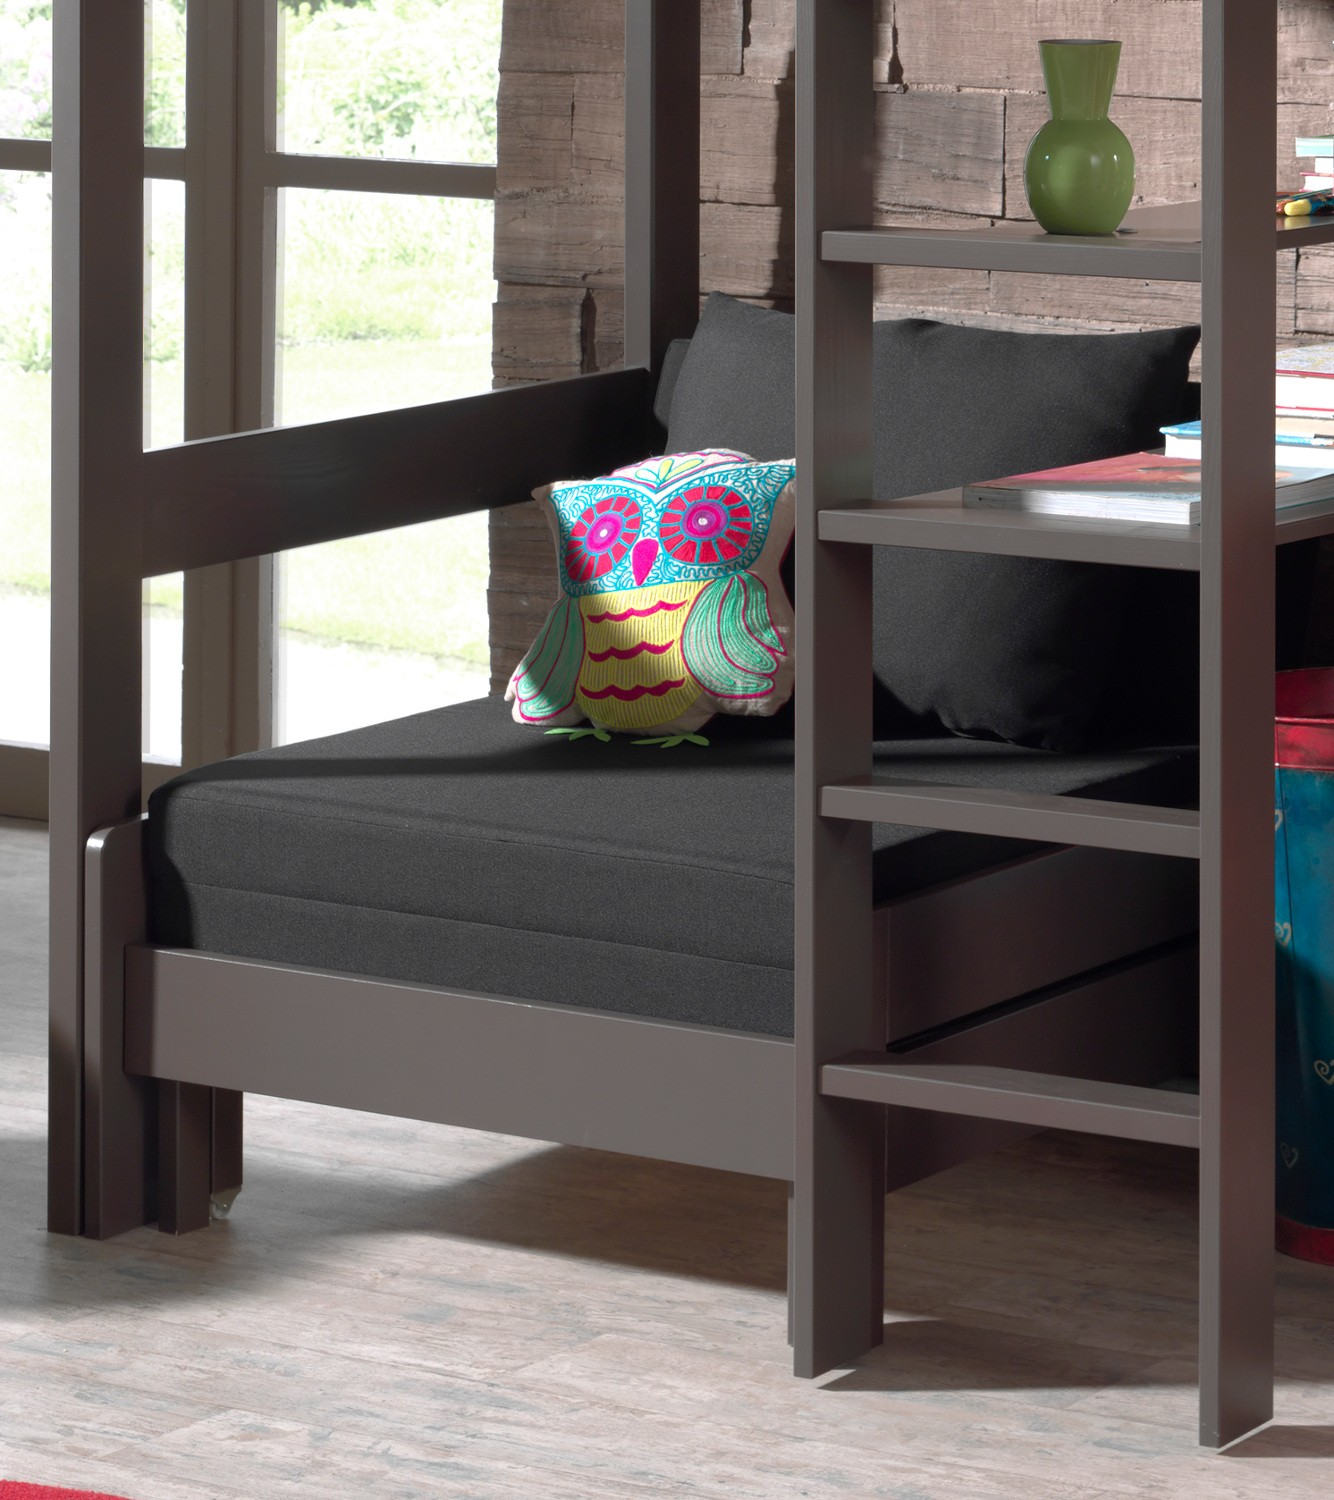 hochbett pino kinderbett multifunktionsbett 90 x 200 cm kiefer anthrazit ebay. Black Bedroom Furniture Sets. Home Design Ideas